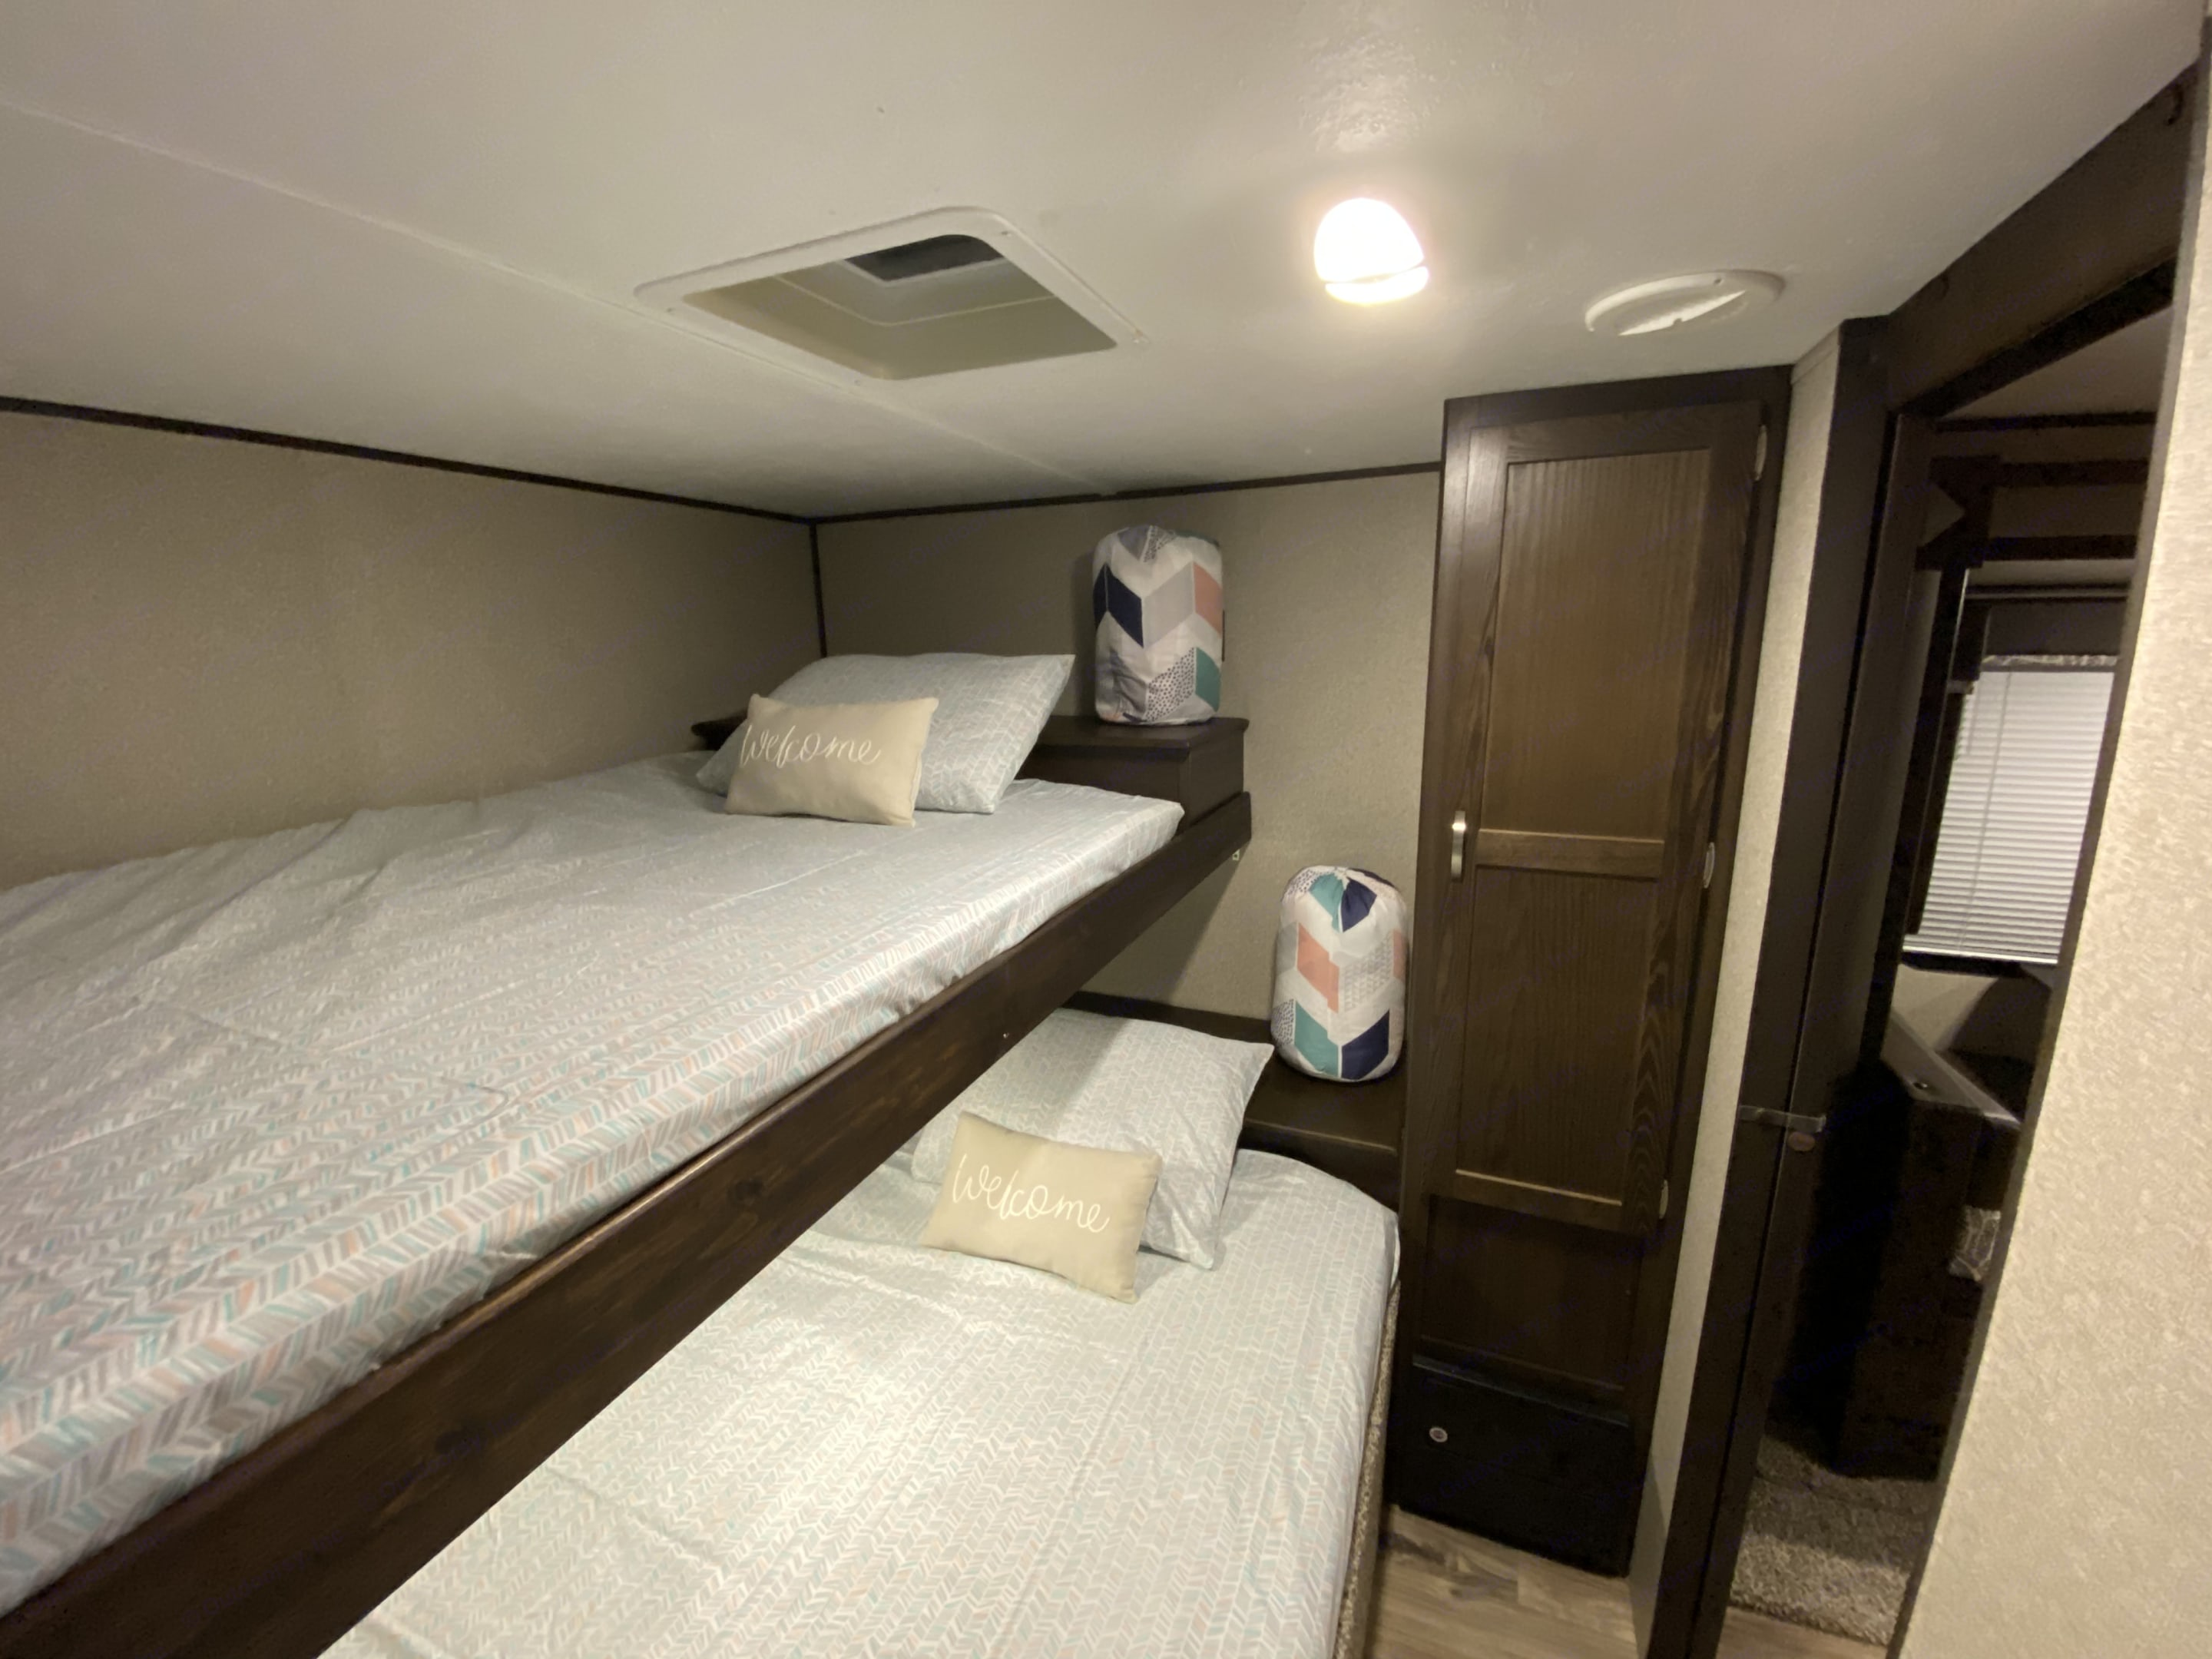 Bunkhouse with storage and room to get dressed. Keystone Summerland 2018